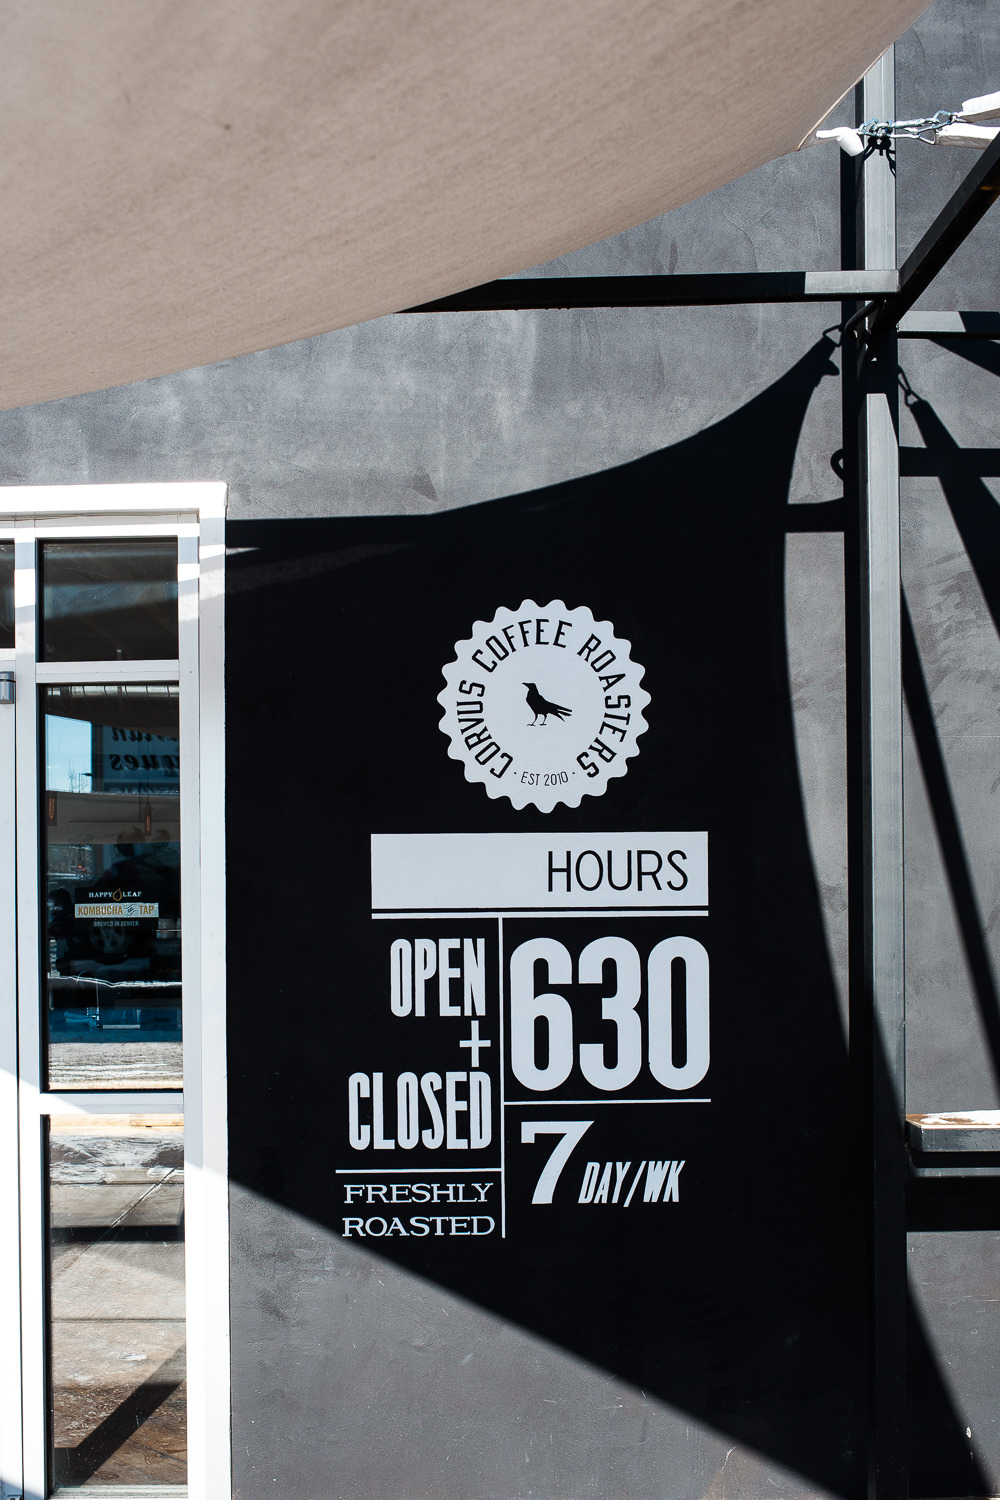 Specialty Coffee shop hours signage